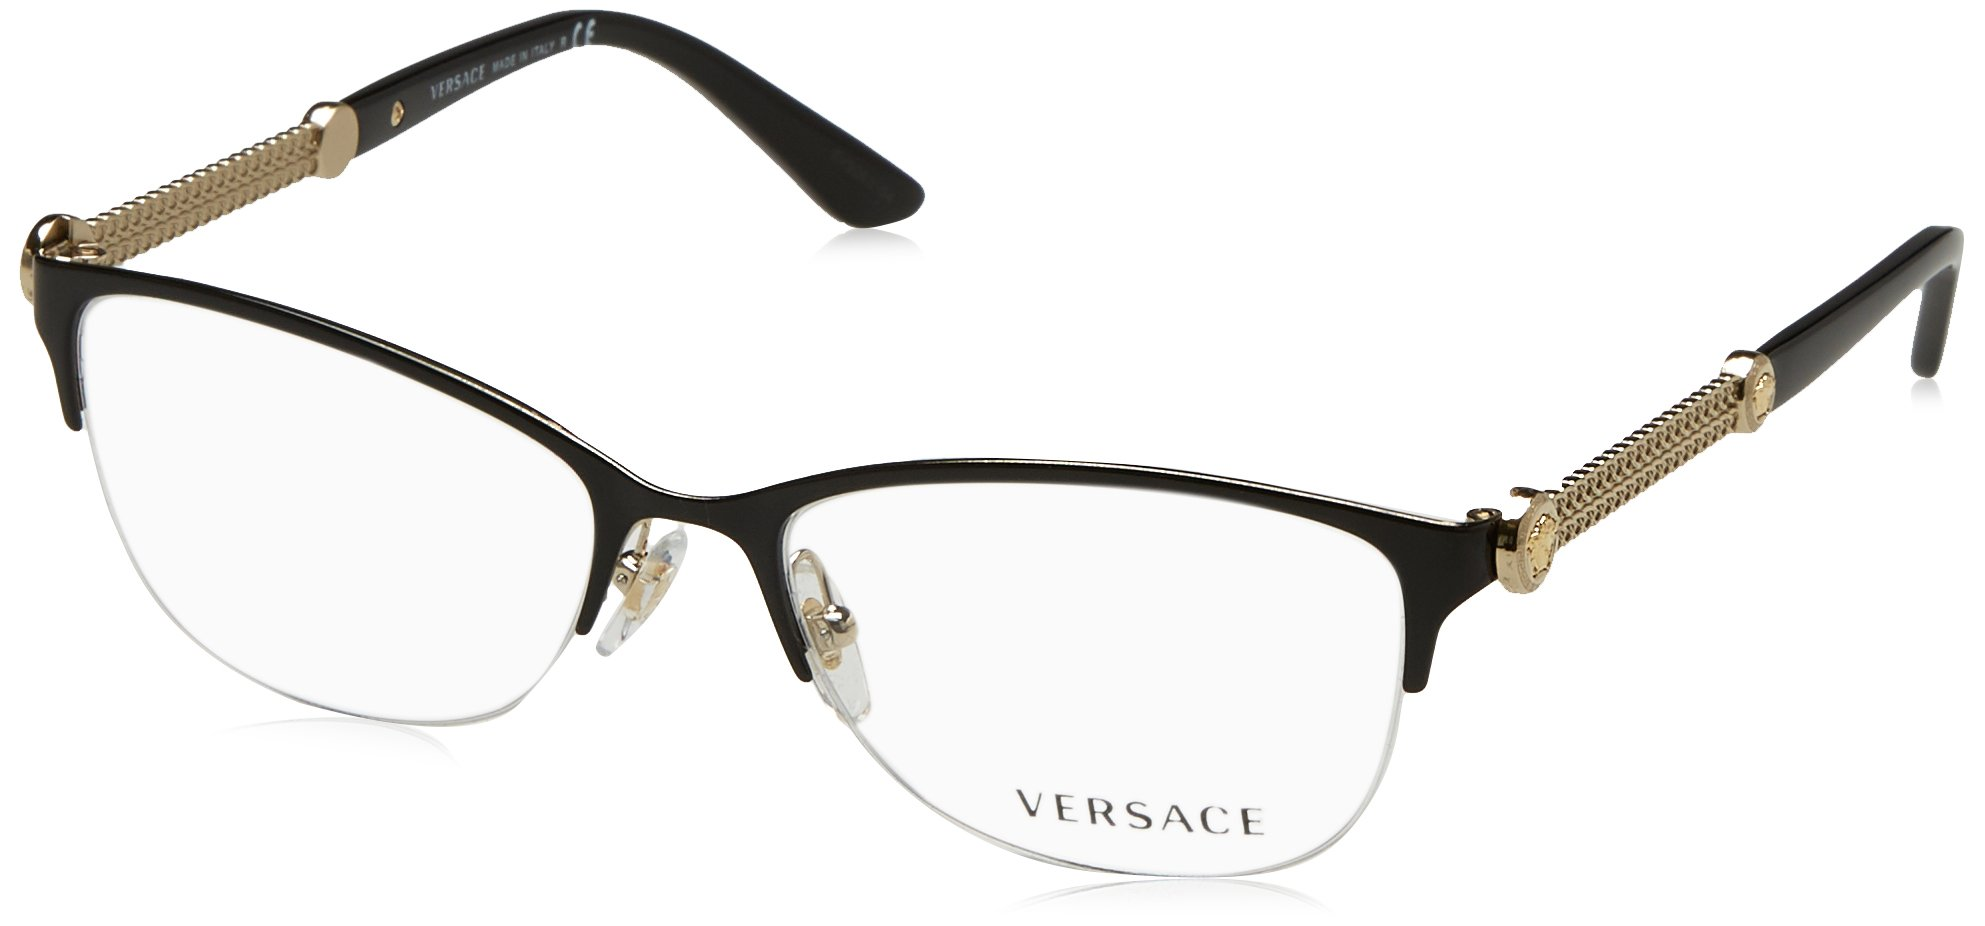 Versace VE1228 Eyeglass Frames 1291-53 - Black/pale Gold VE1228-1291-53